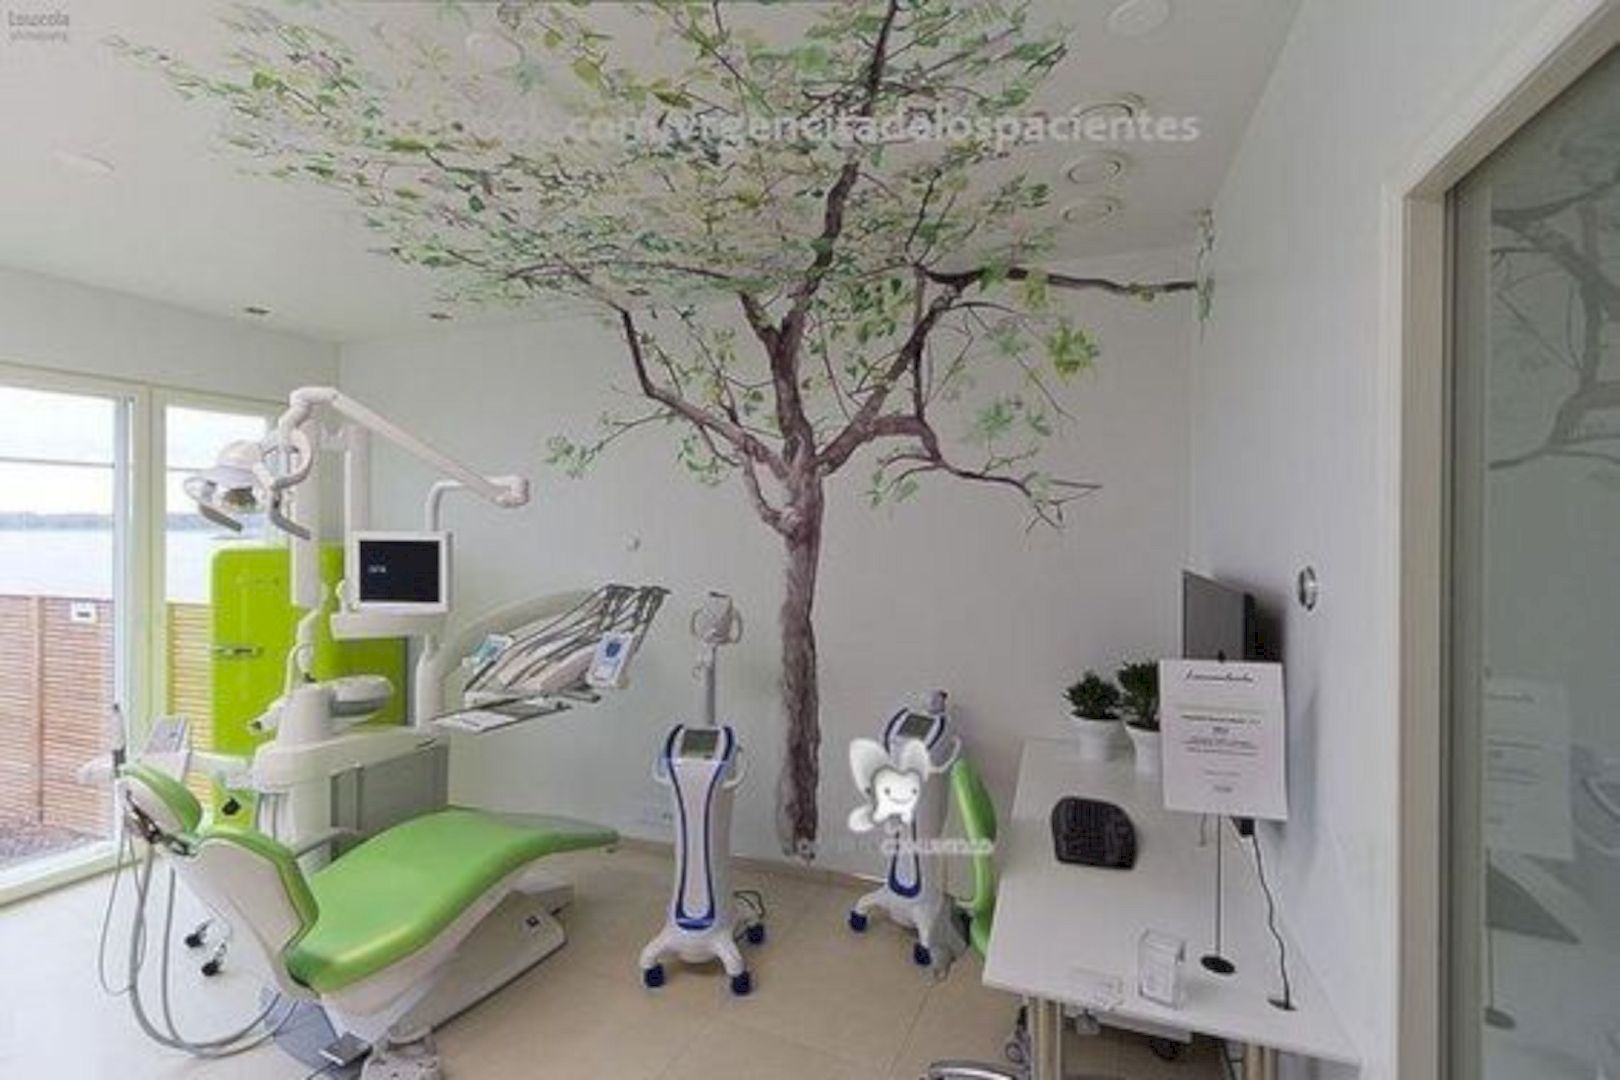 17 interior design ideas to make a dental clinic less frightening https www